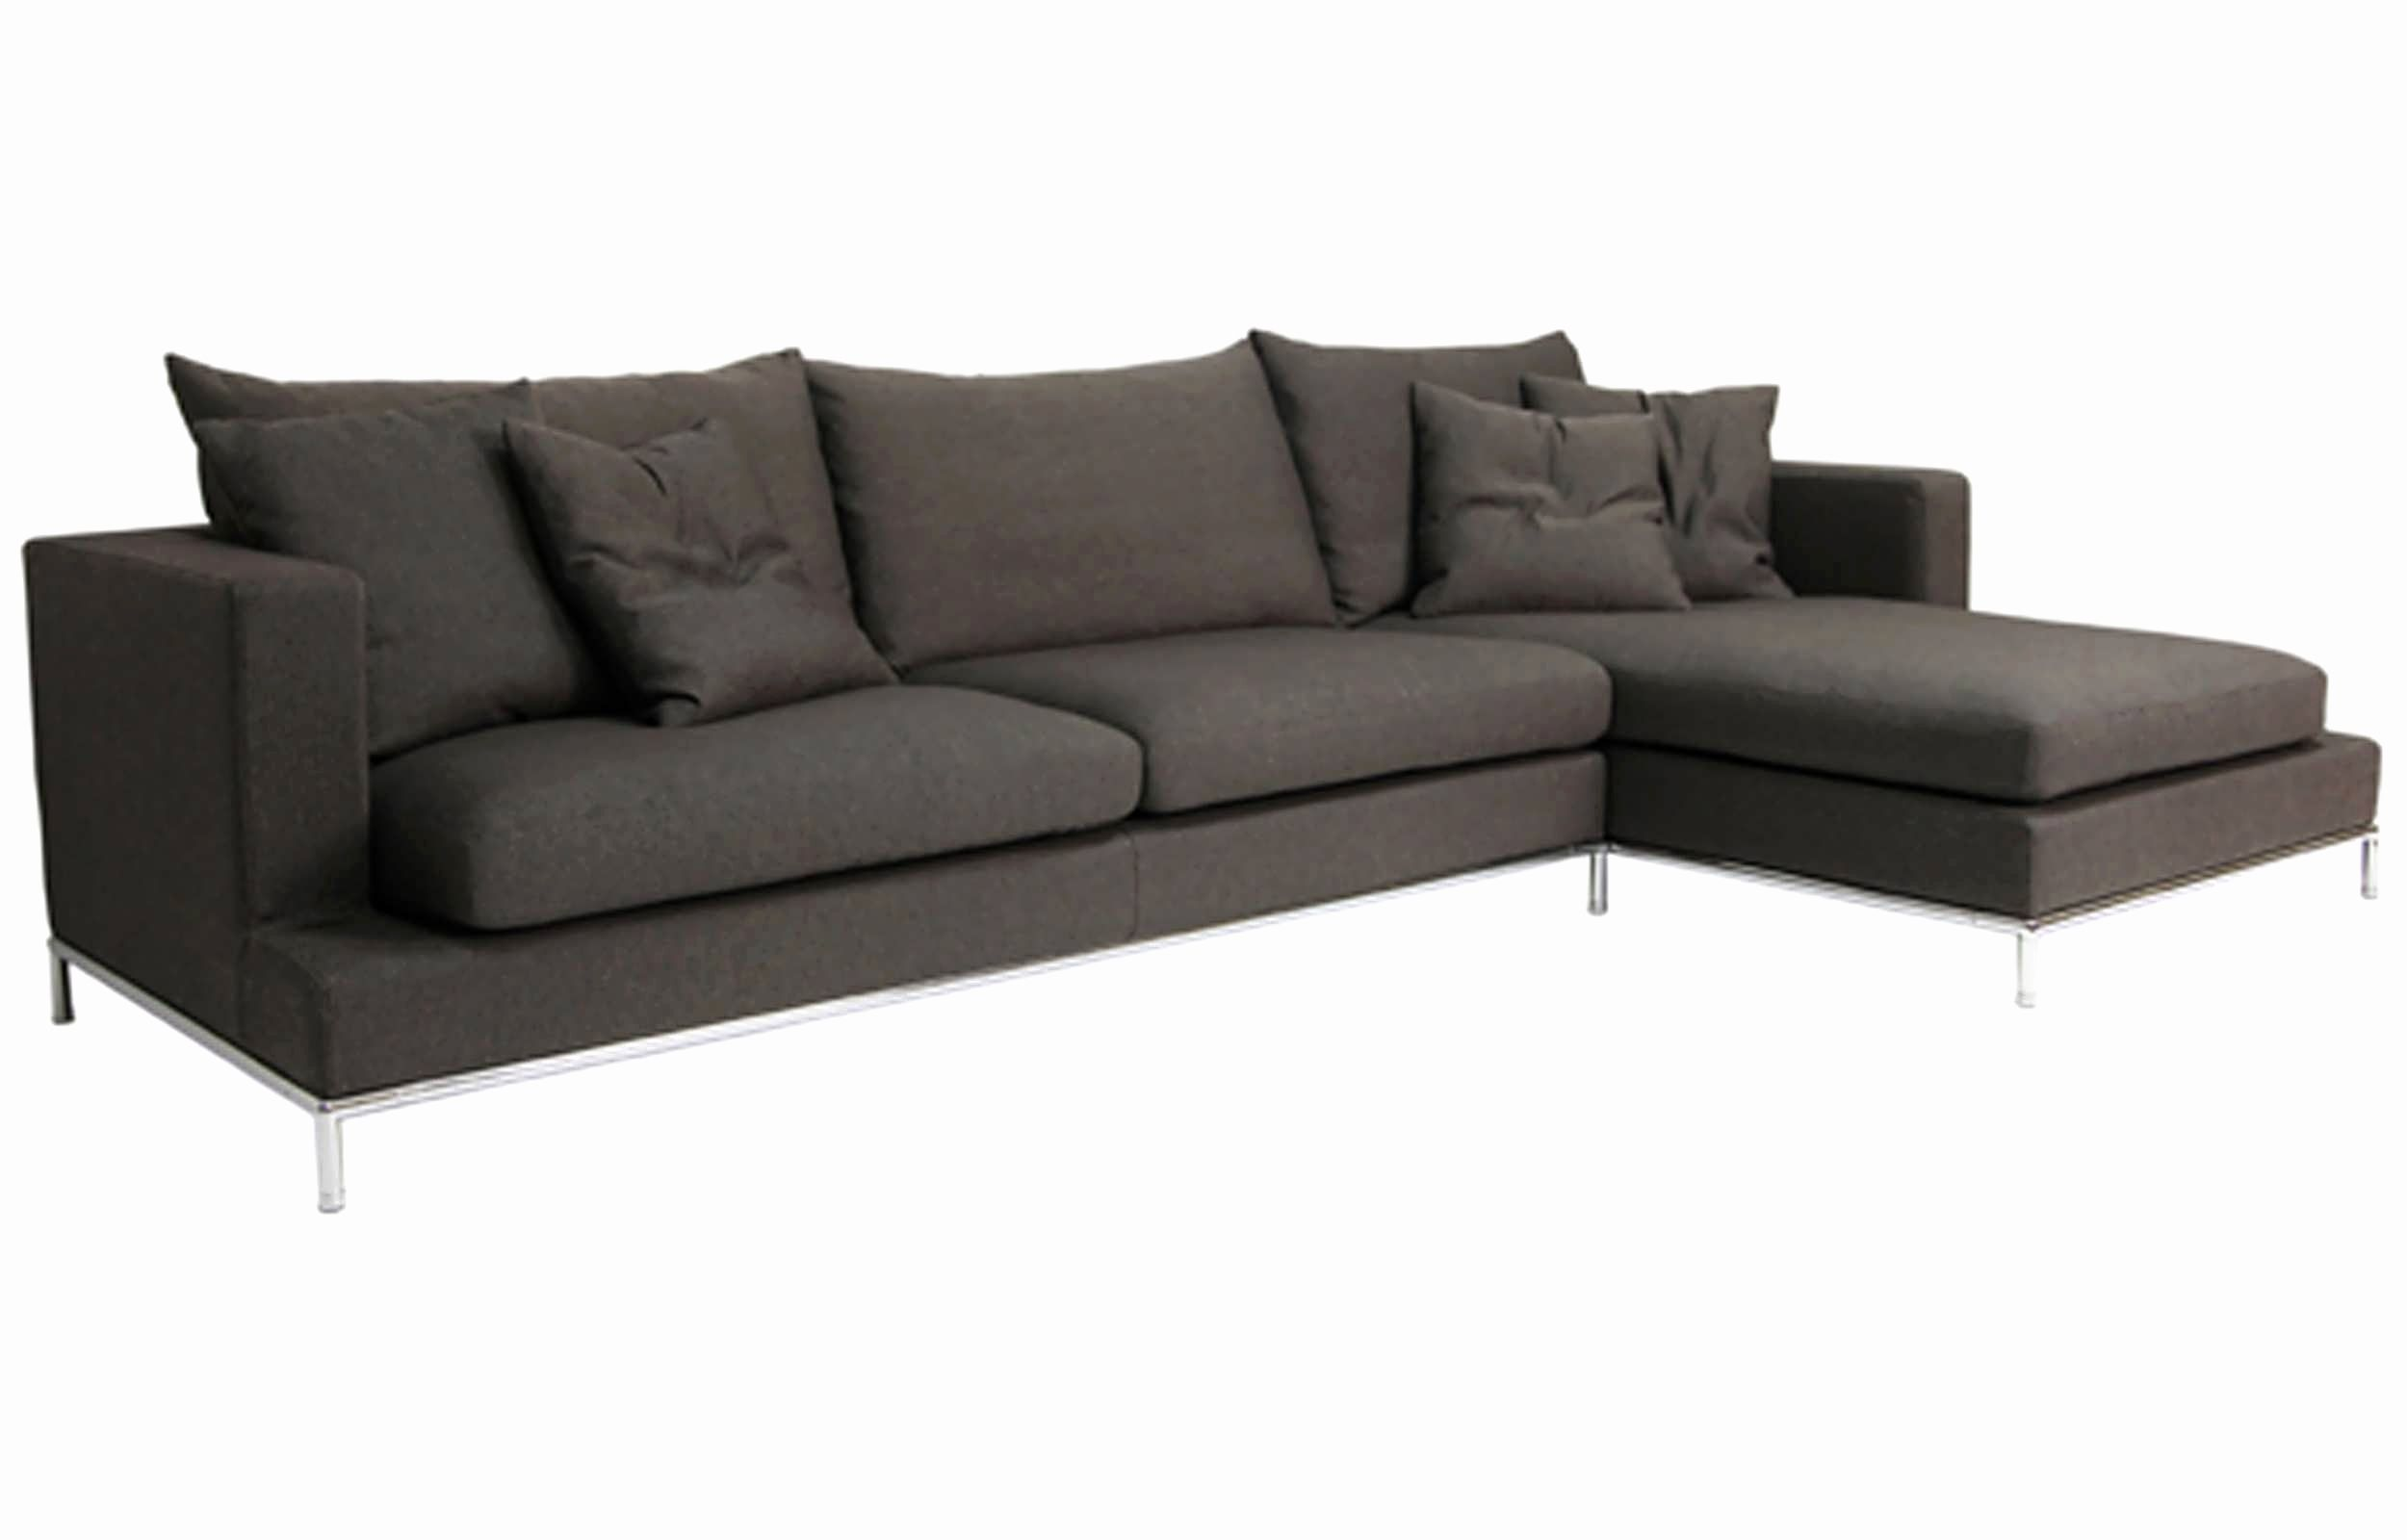 Best Of Microfiber Sofa Beds Awesome Grey Microfiber Sofa New Intuisiblog